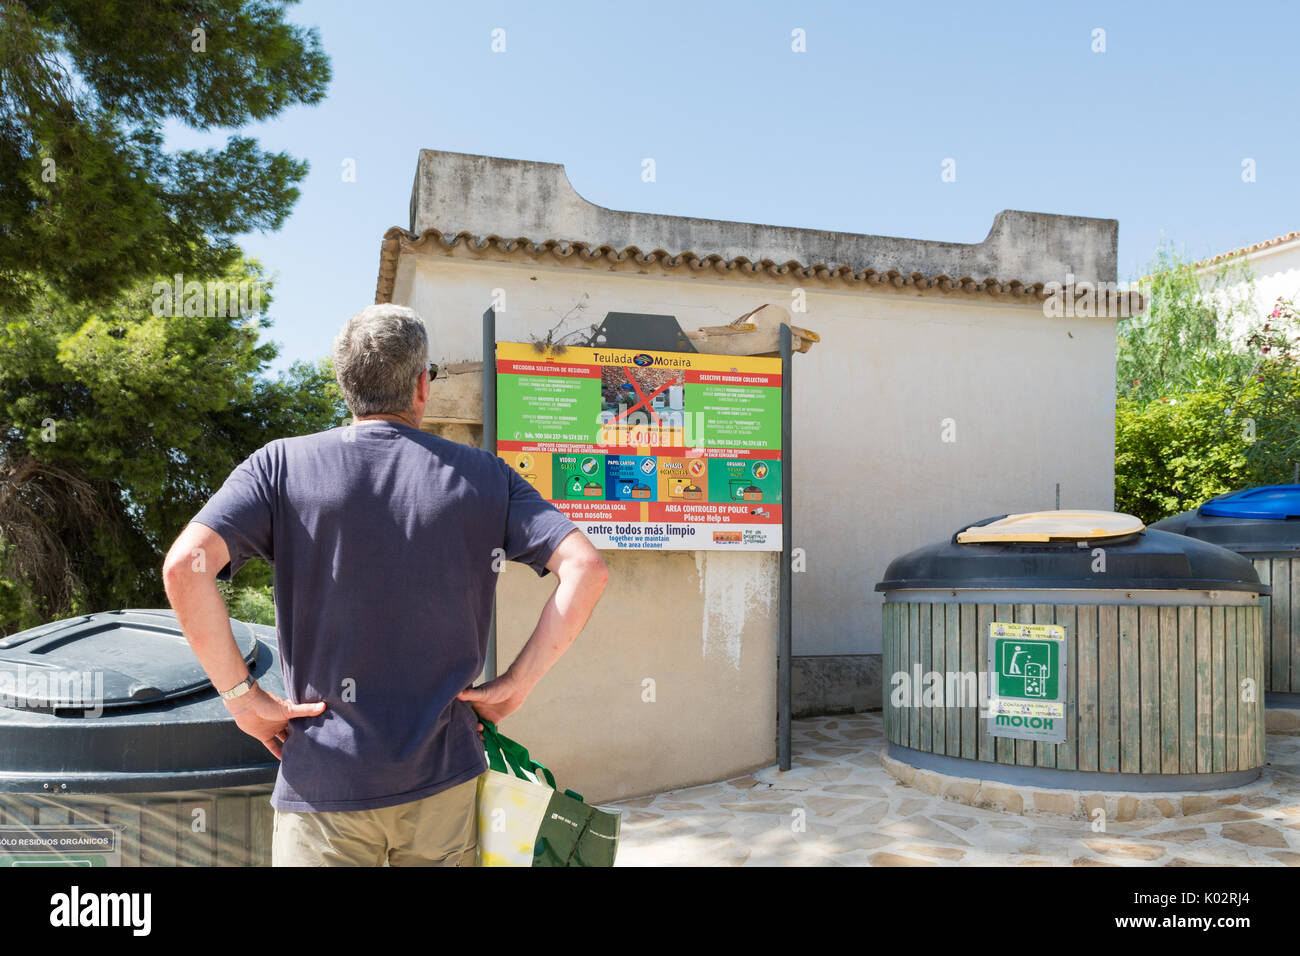 recycling on holiday - tourist looking at recycling facilities close to Spanish holiday villa - Stock Image